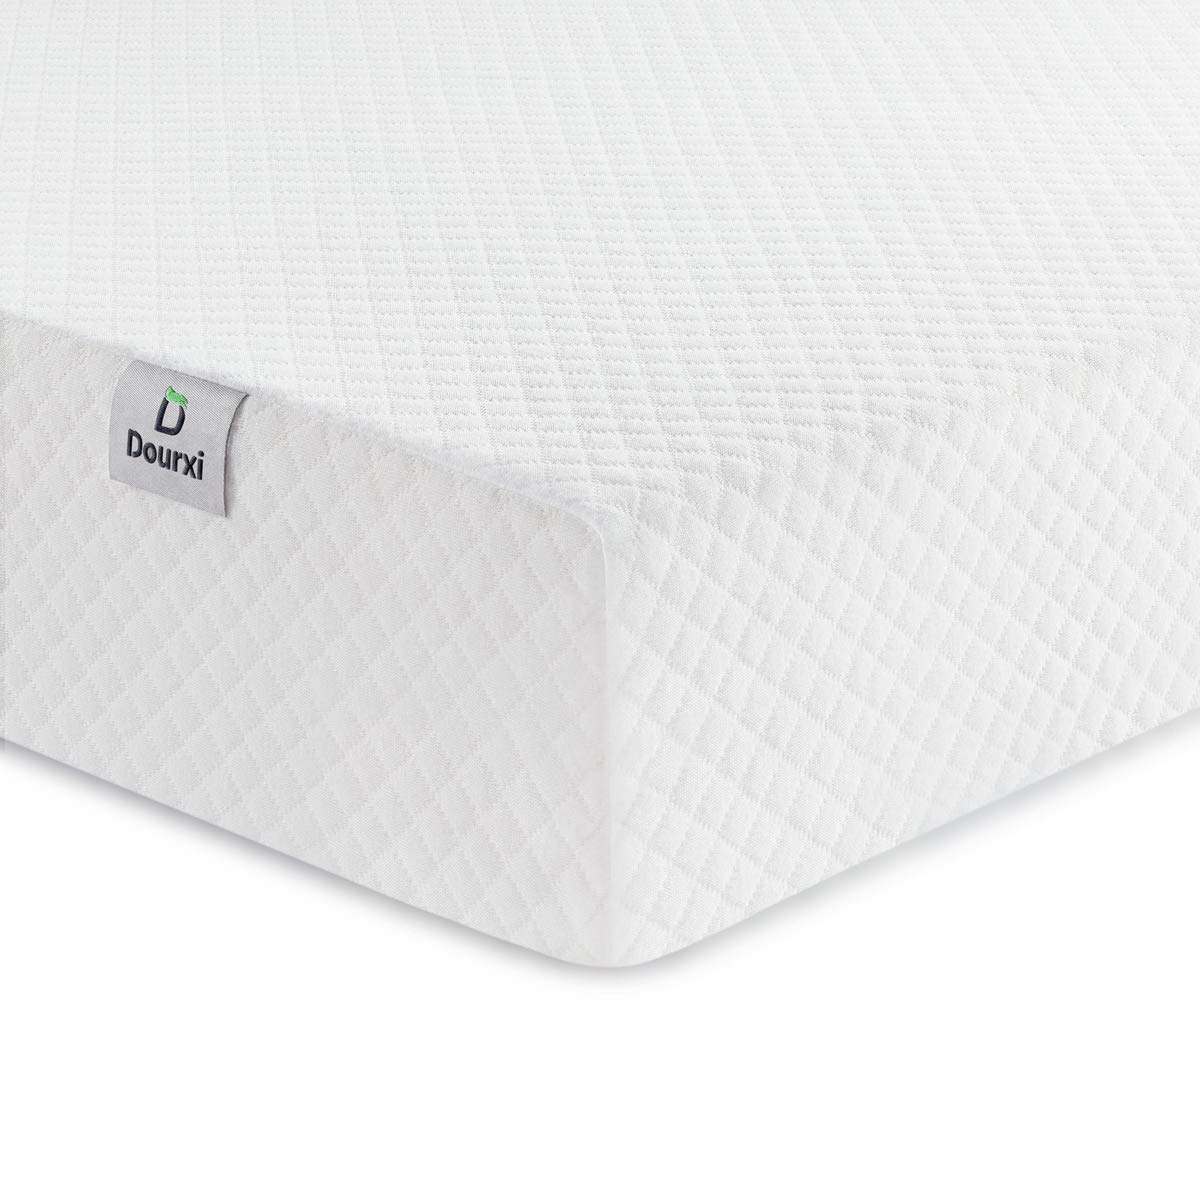 Dourxi Crib Mattress and Toddler Bed Mattress, Dual Sided Sleep System, Firm Side for Infants and Plush Soft Side for Toddlers, Breathable Foam Baby Mattress with Removable Cover by Dourxi